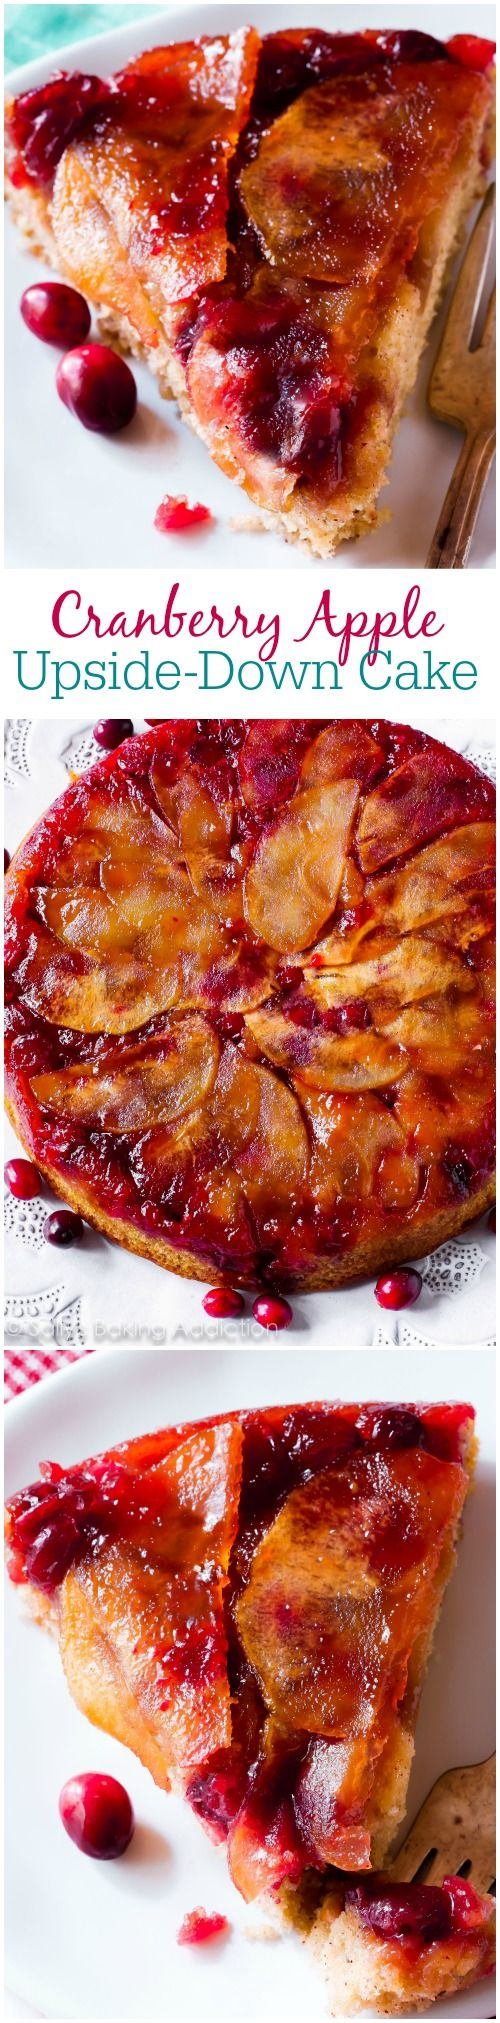 Cranberry Apple Upside-Down Cake by sallysbakingaddiction.com - this fall dessert is full of flavor and incredibly simple to make!